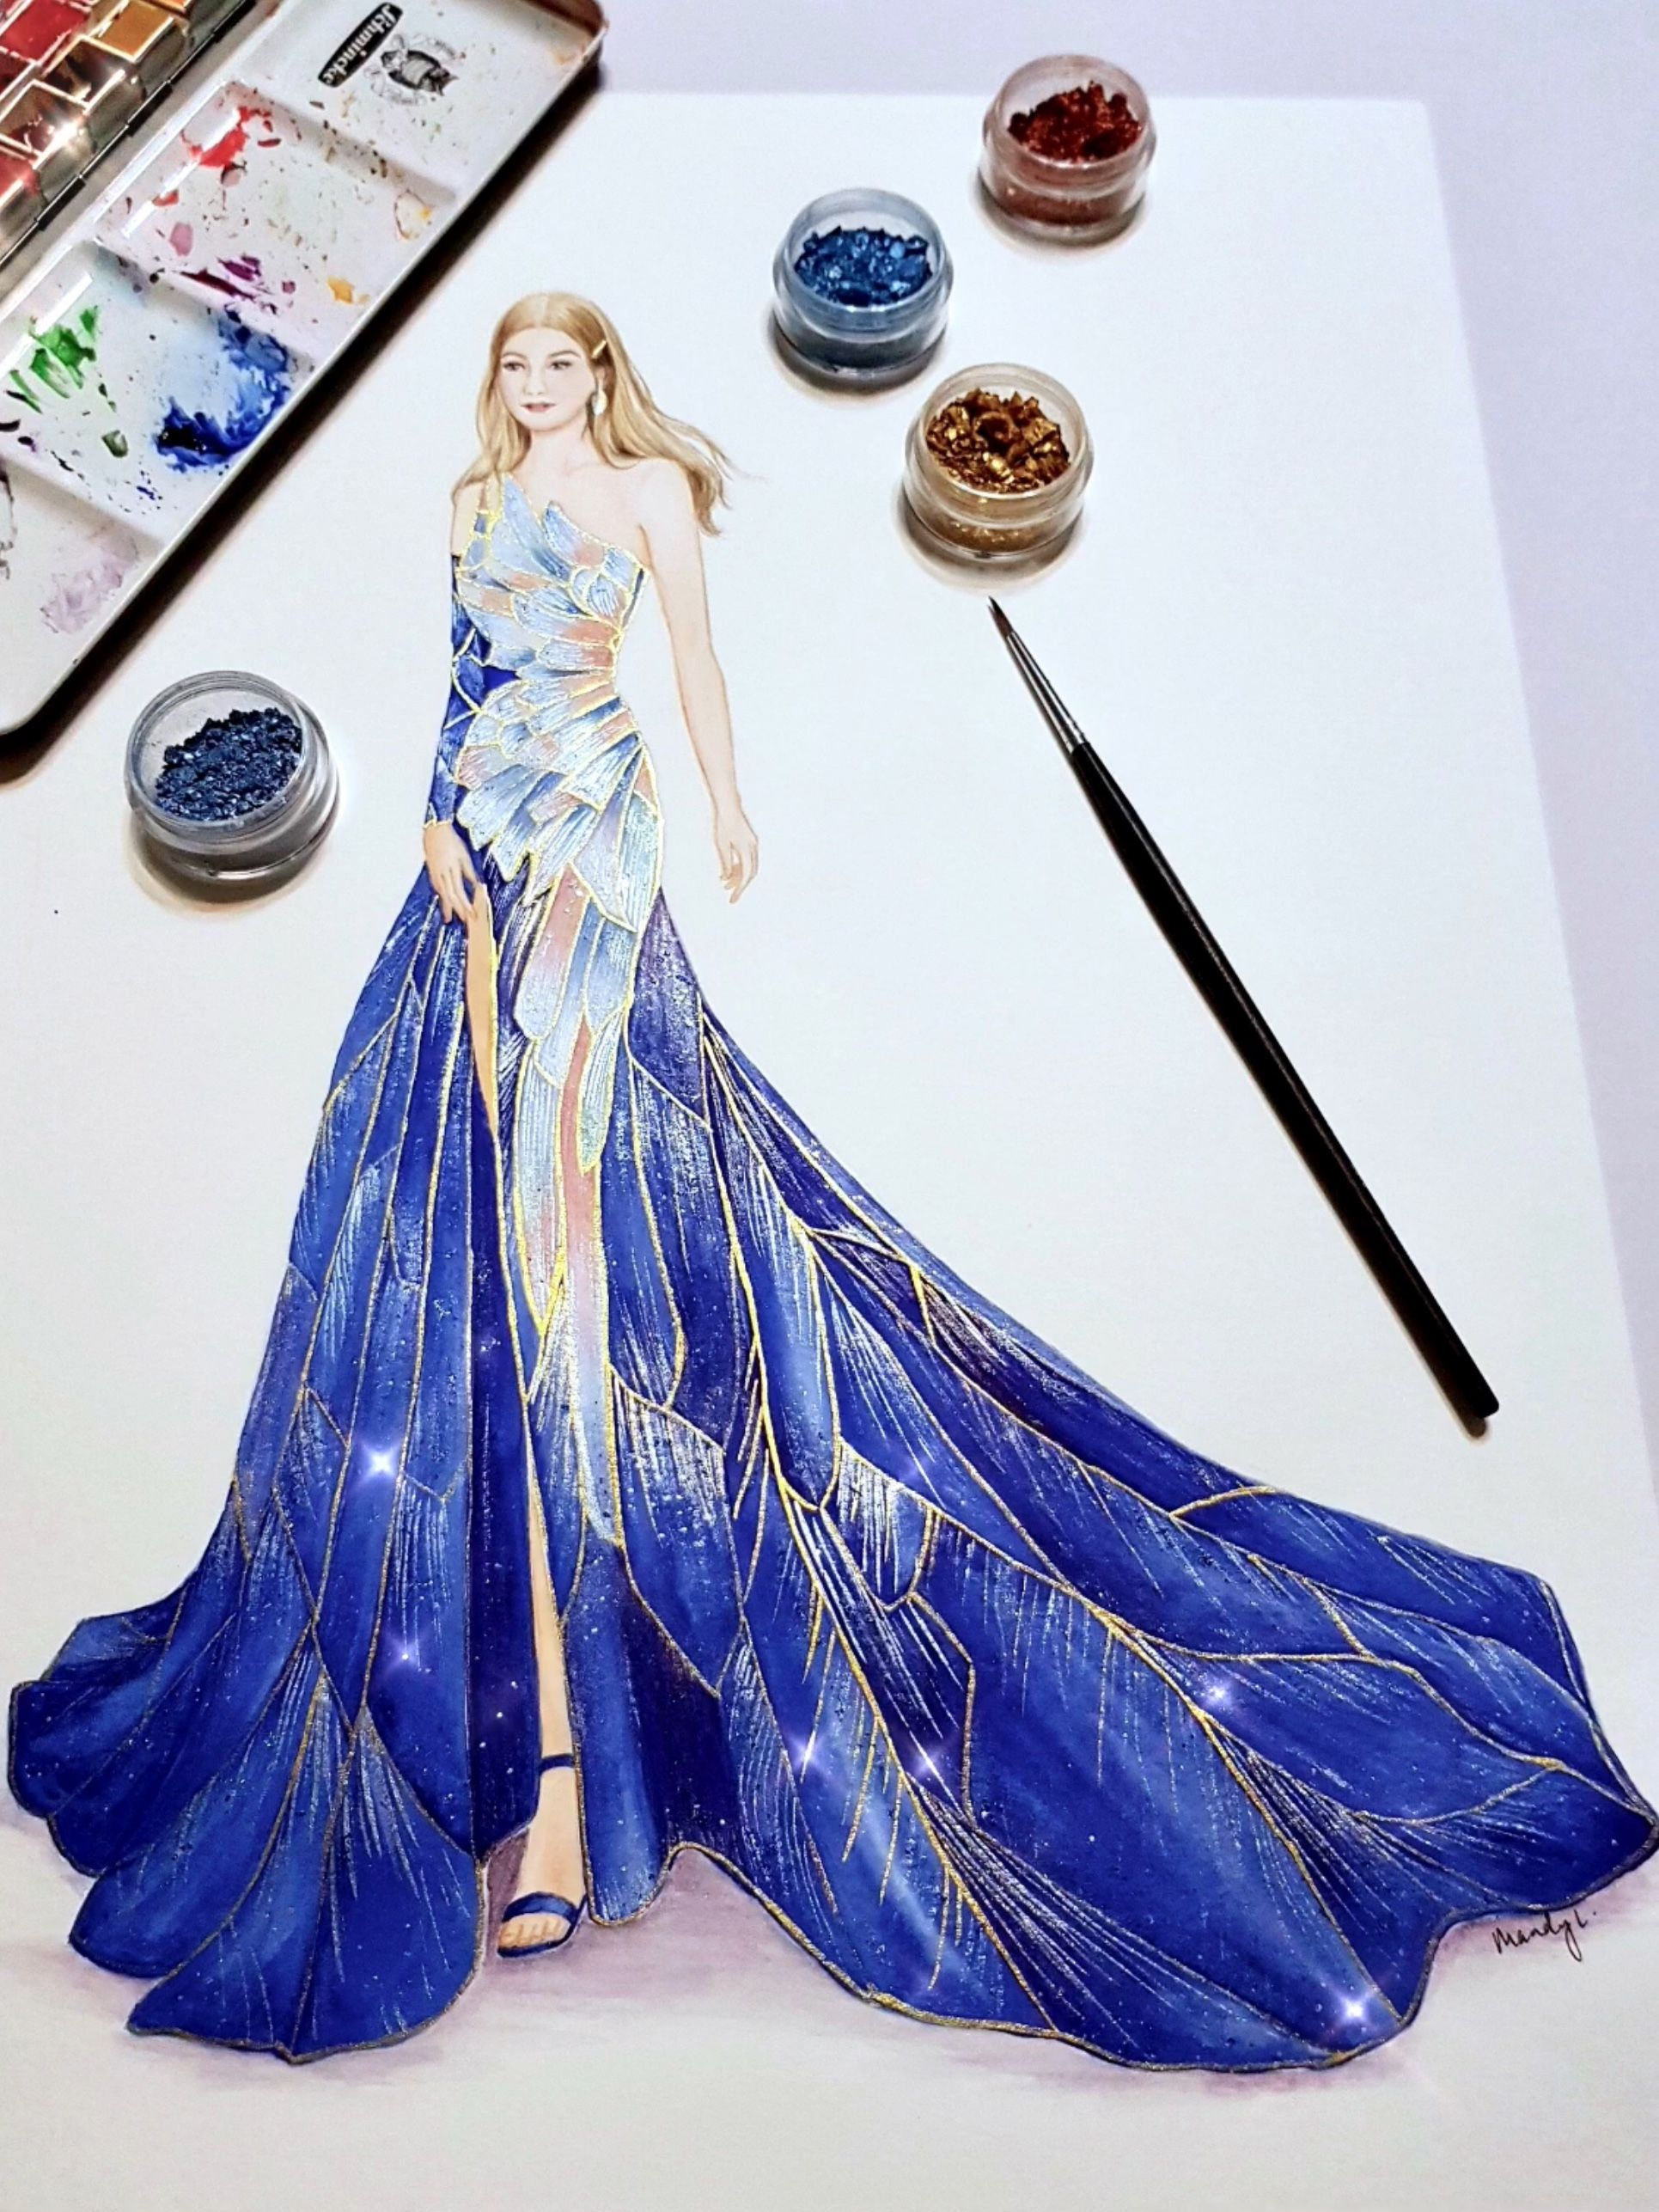 Photo of Draw A Story | Fashion and Lifestyle Illustrator | Live Event Illustrator